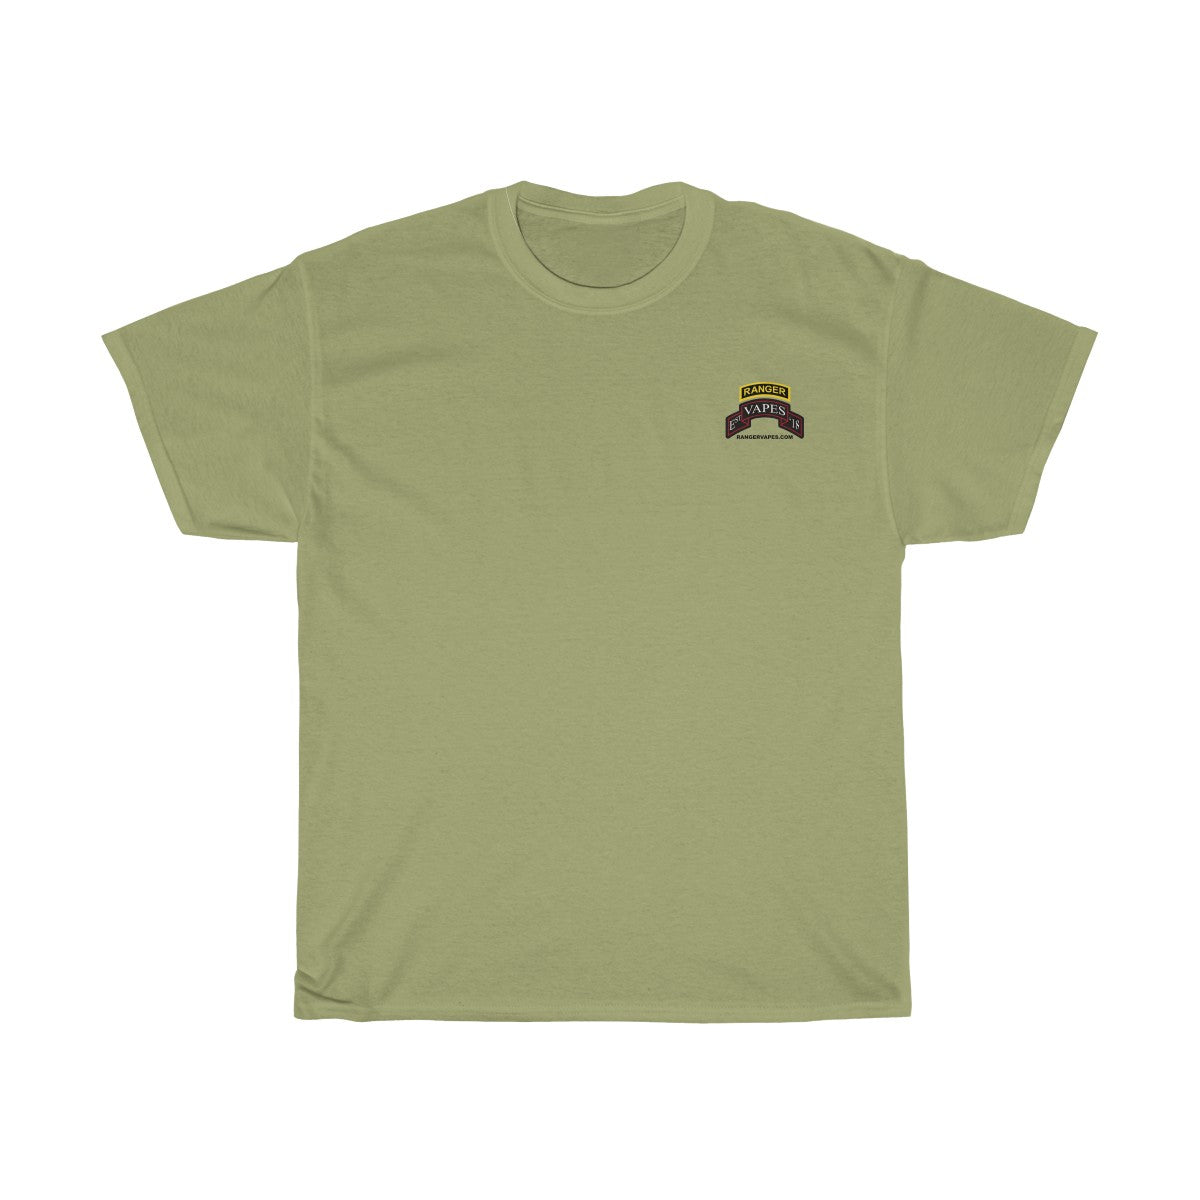 "Lite Colored Hooah! ""It's a Ranger Vapes Thing"" T-Shirt"